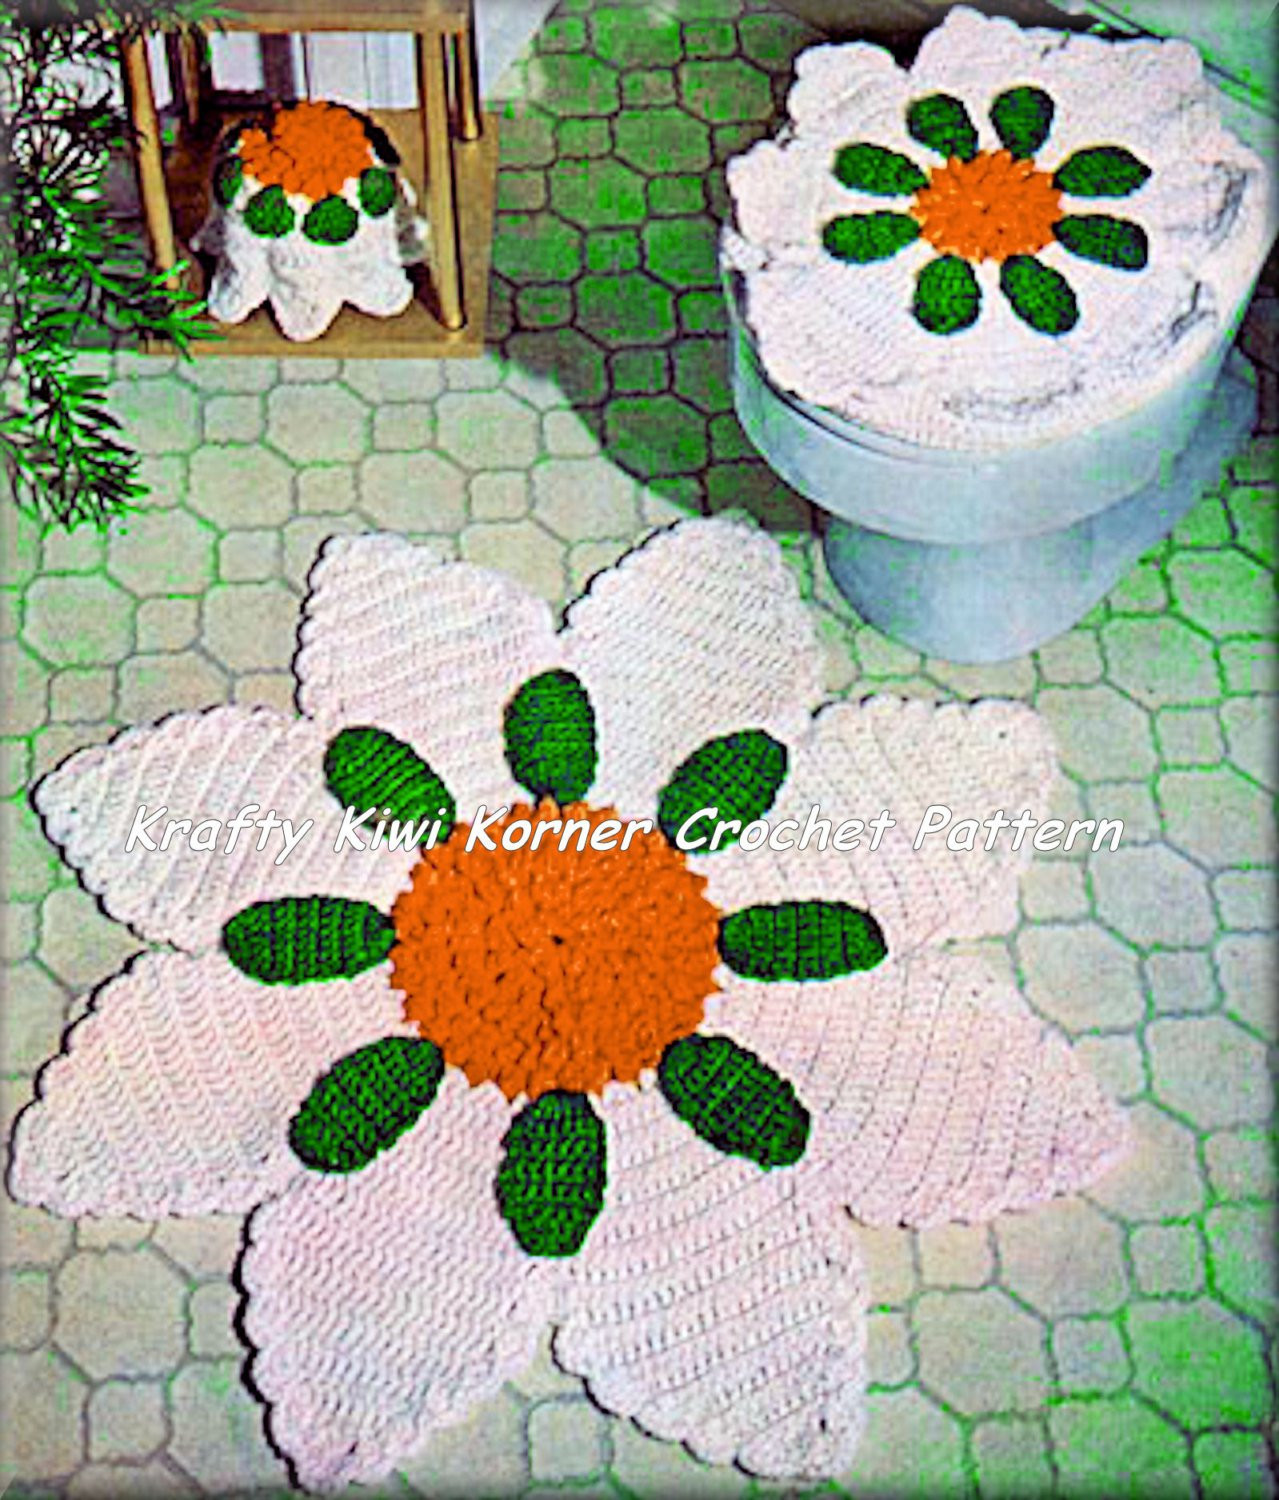 Crochet Bathroom Set Patterns Lot ONE 1 5 5 Patterns for 1 99